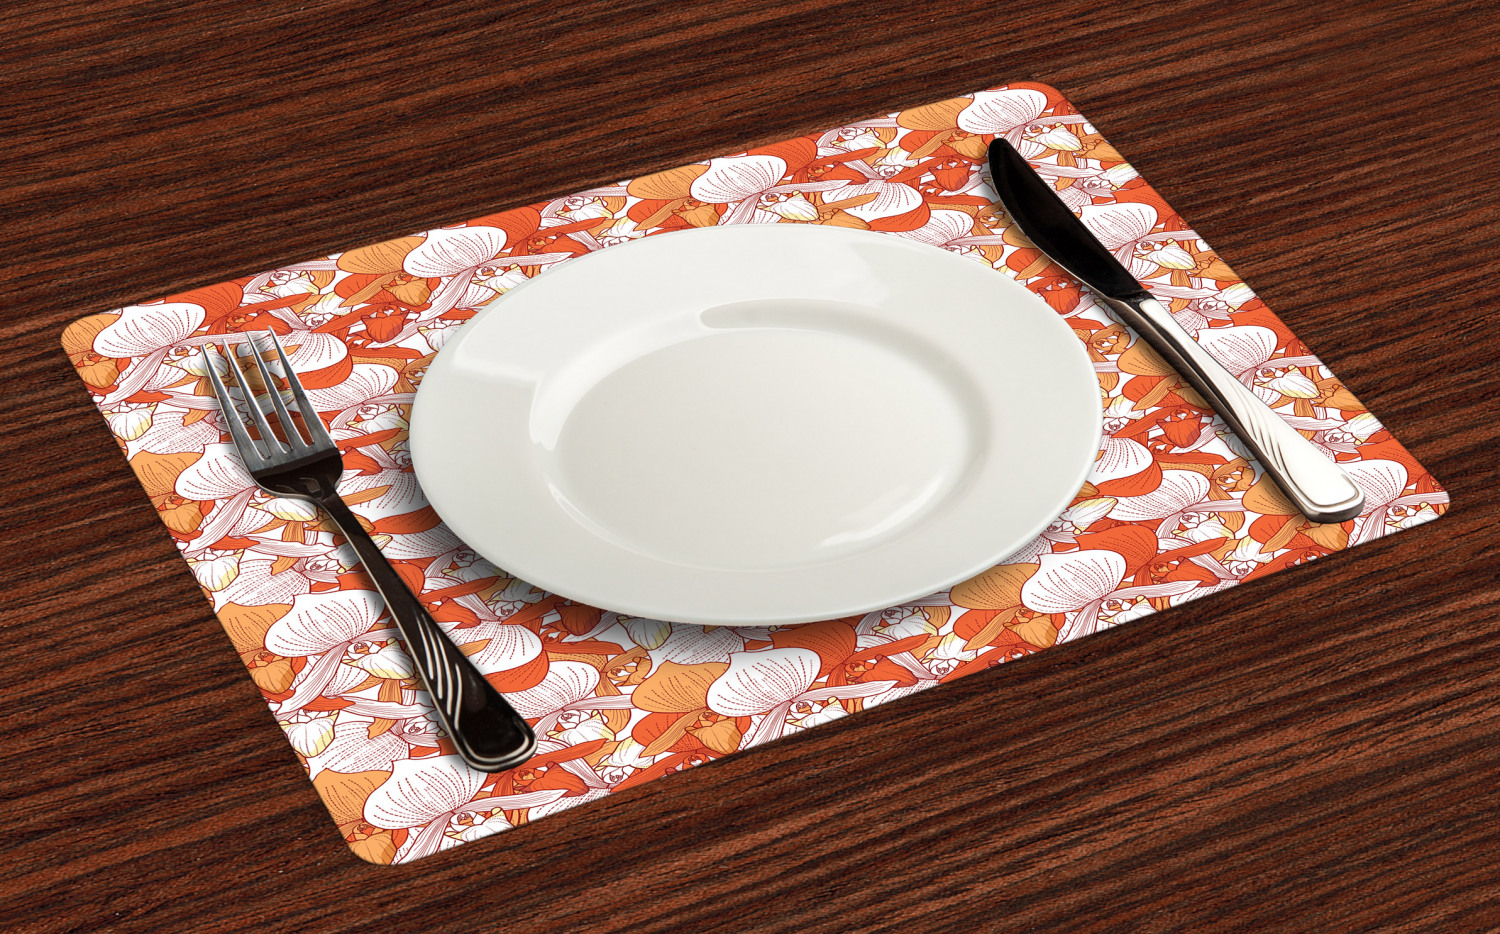 Ambesonne-Flower-Pattern-Placemat-Set-of-4-Fabric-Place-Mats-for-Table-Decor thumbnail 189